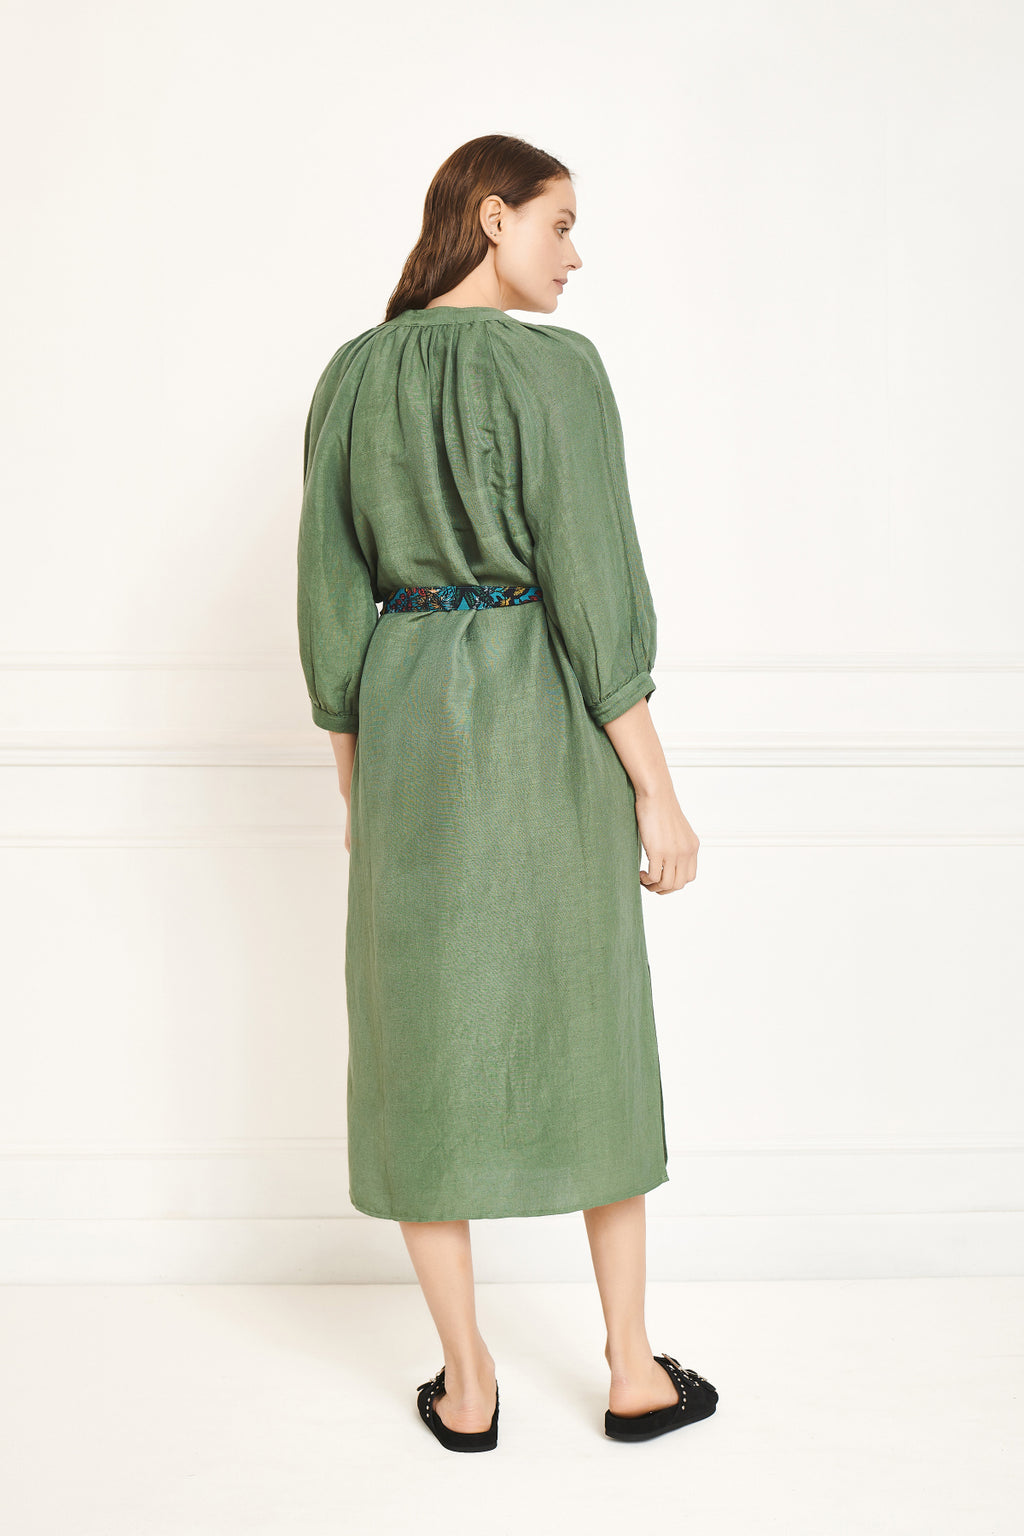 MKT Rousse Dress - Green